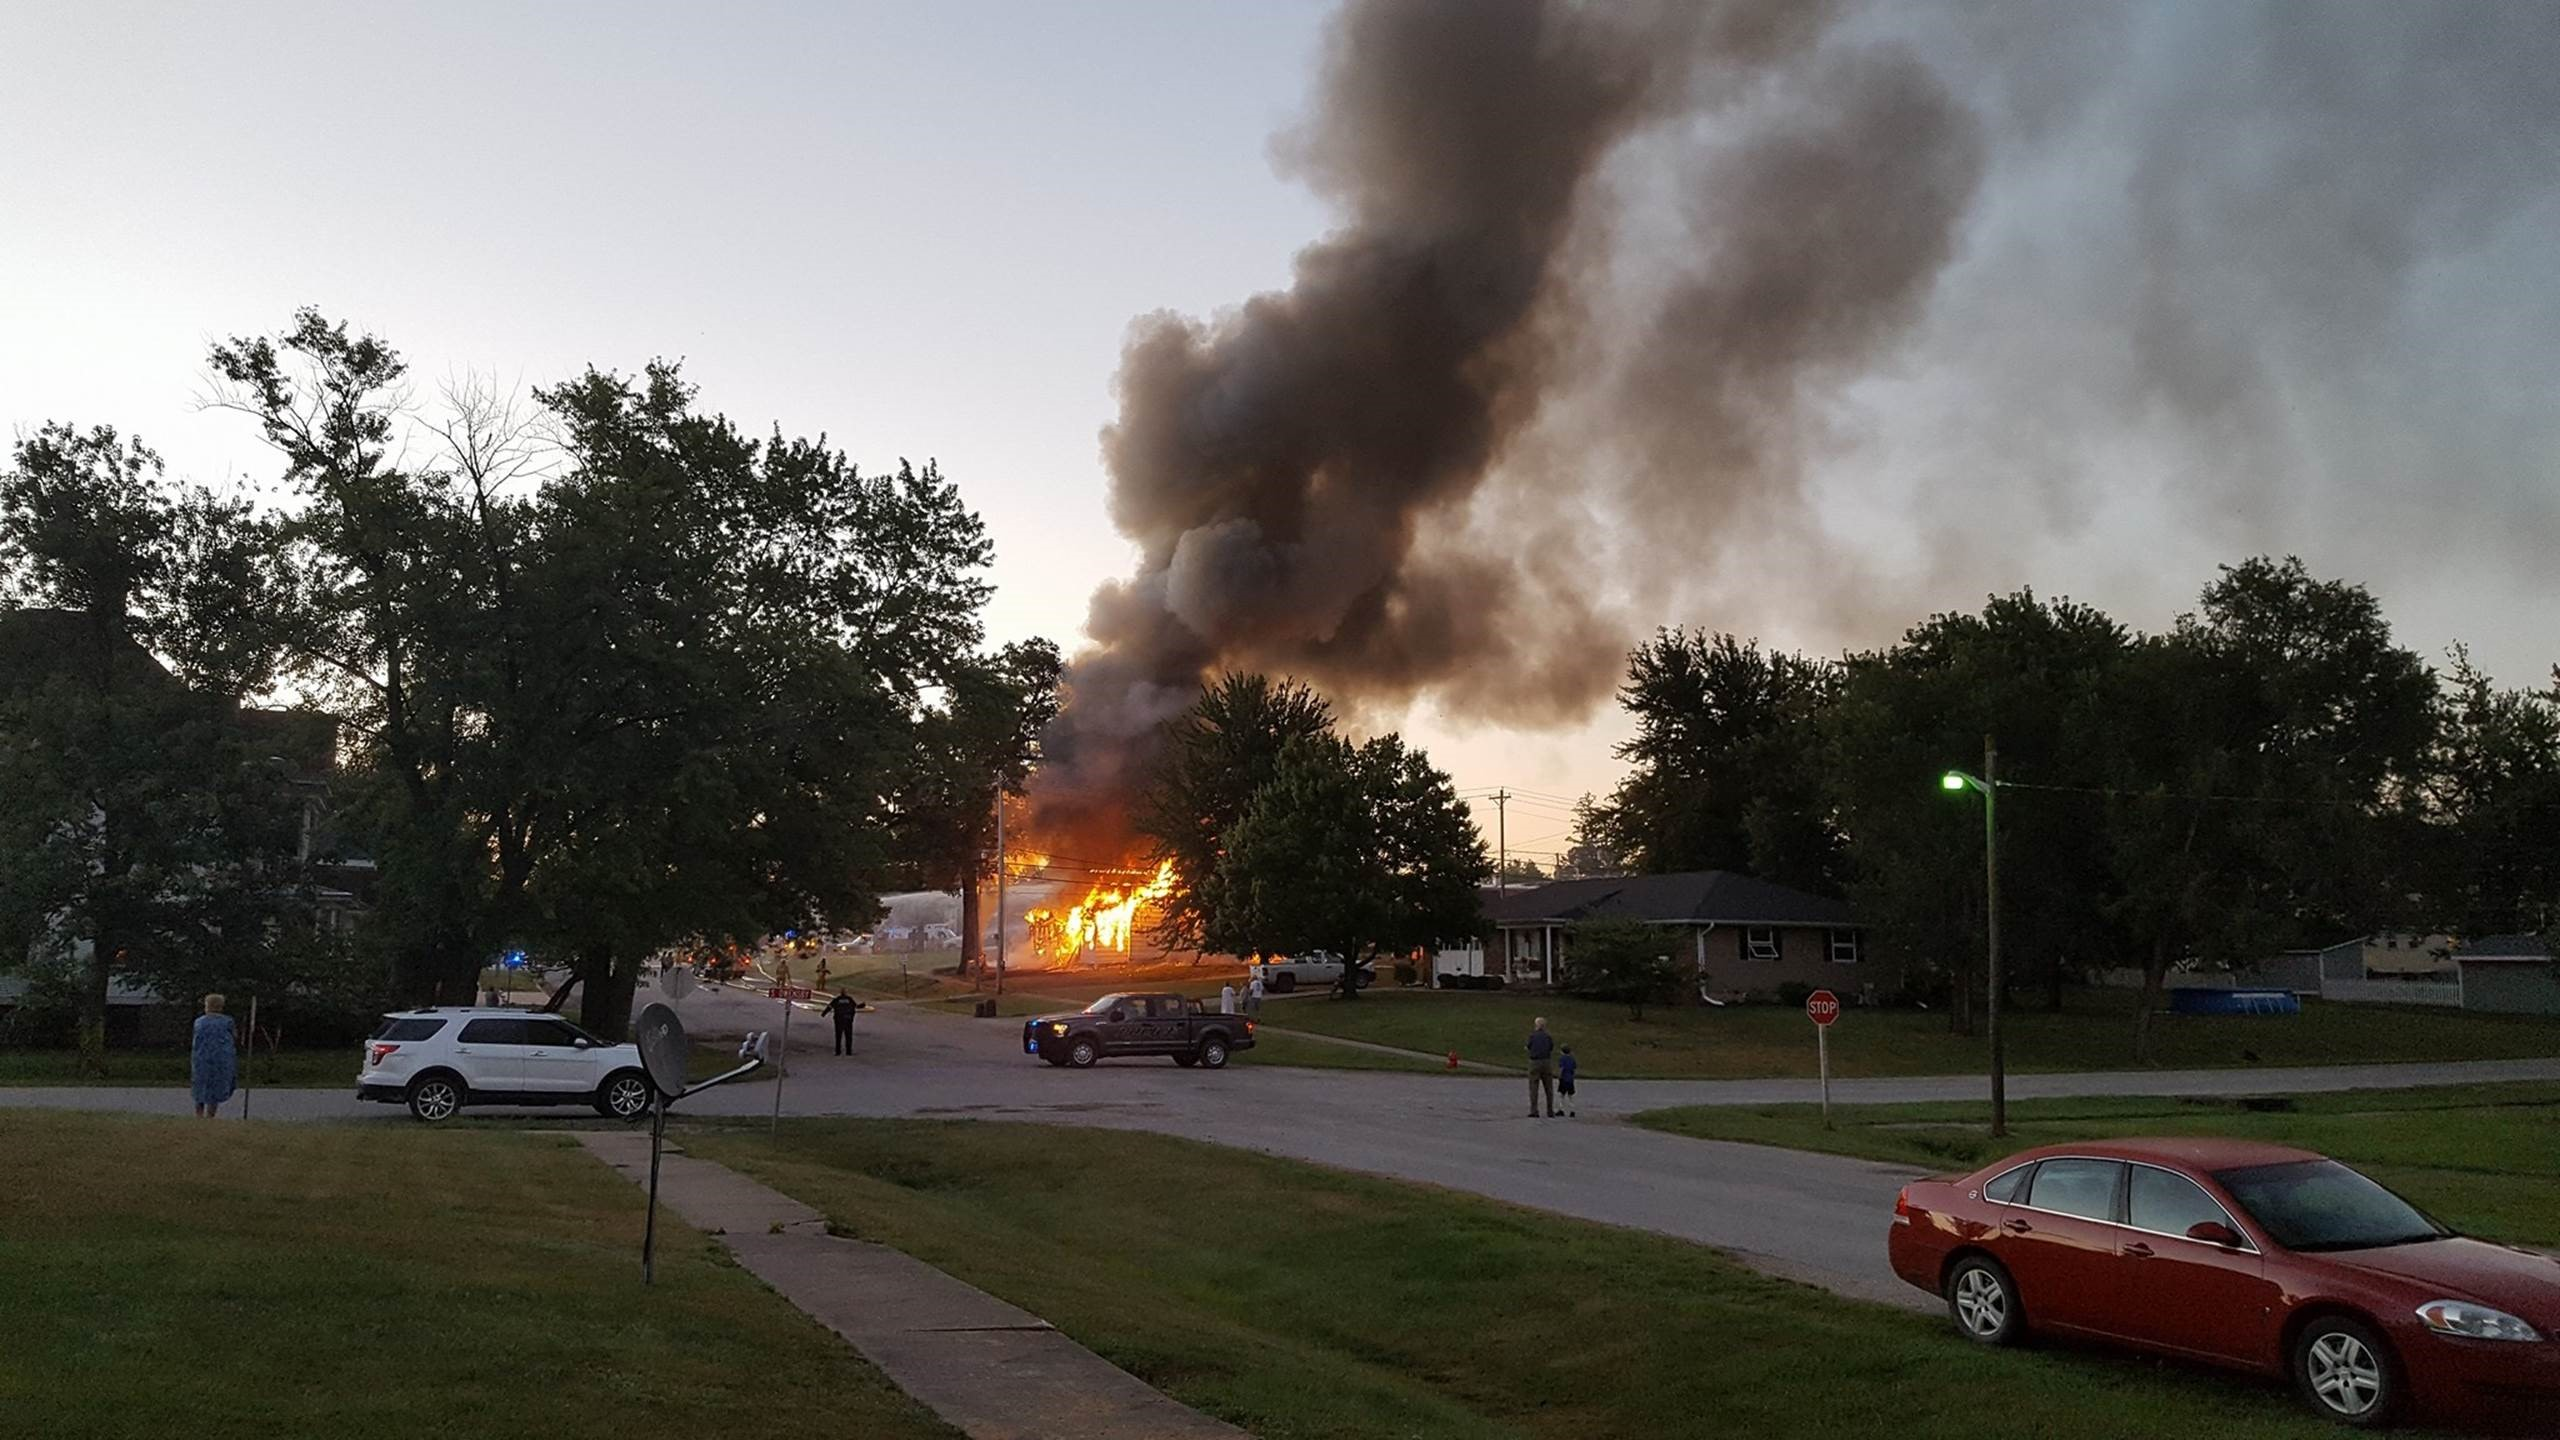 Crews battled a fully engulfed fire at a house in La Plata Tuesday morning (Photo courtesy: Teresa Rehm)